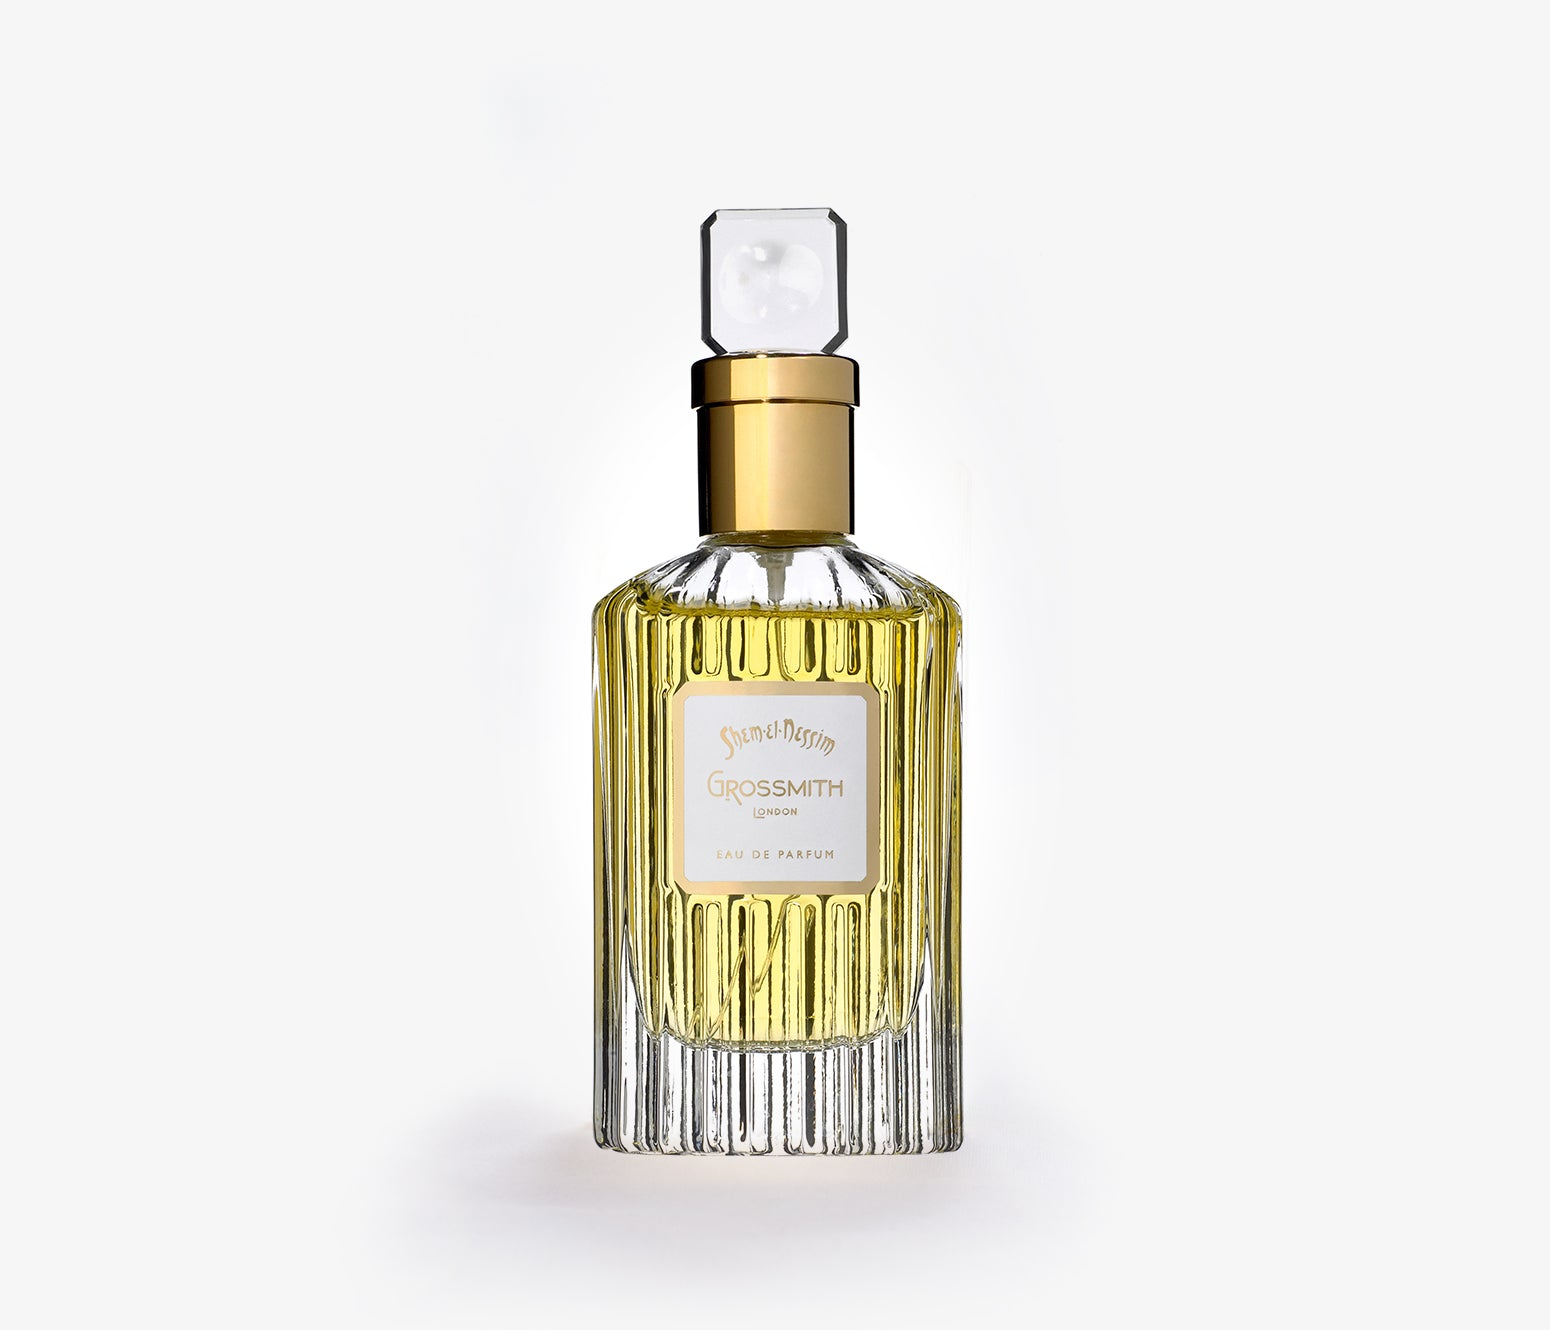 Grossmith London - Shem-el-Nessim - 100ml - ATJ8285 - product image - Fragrance - Les Senteurs